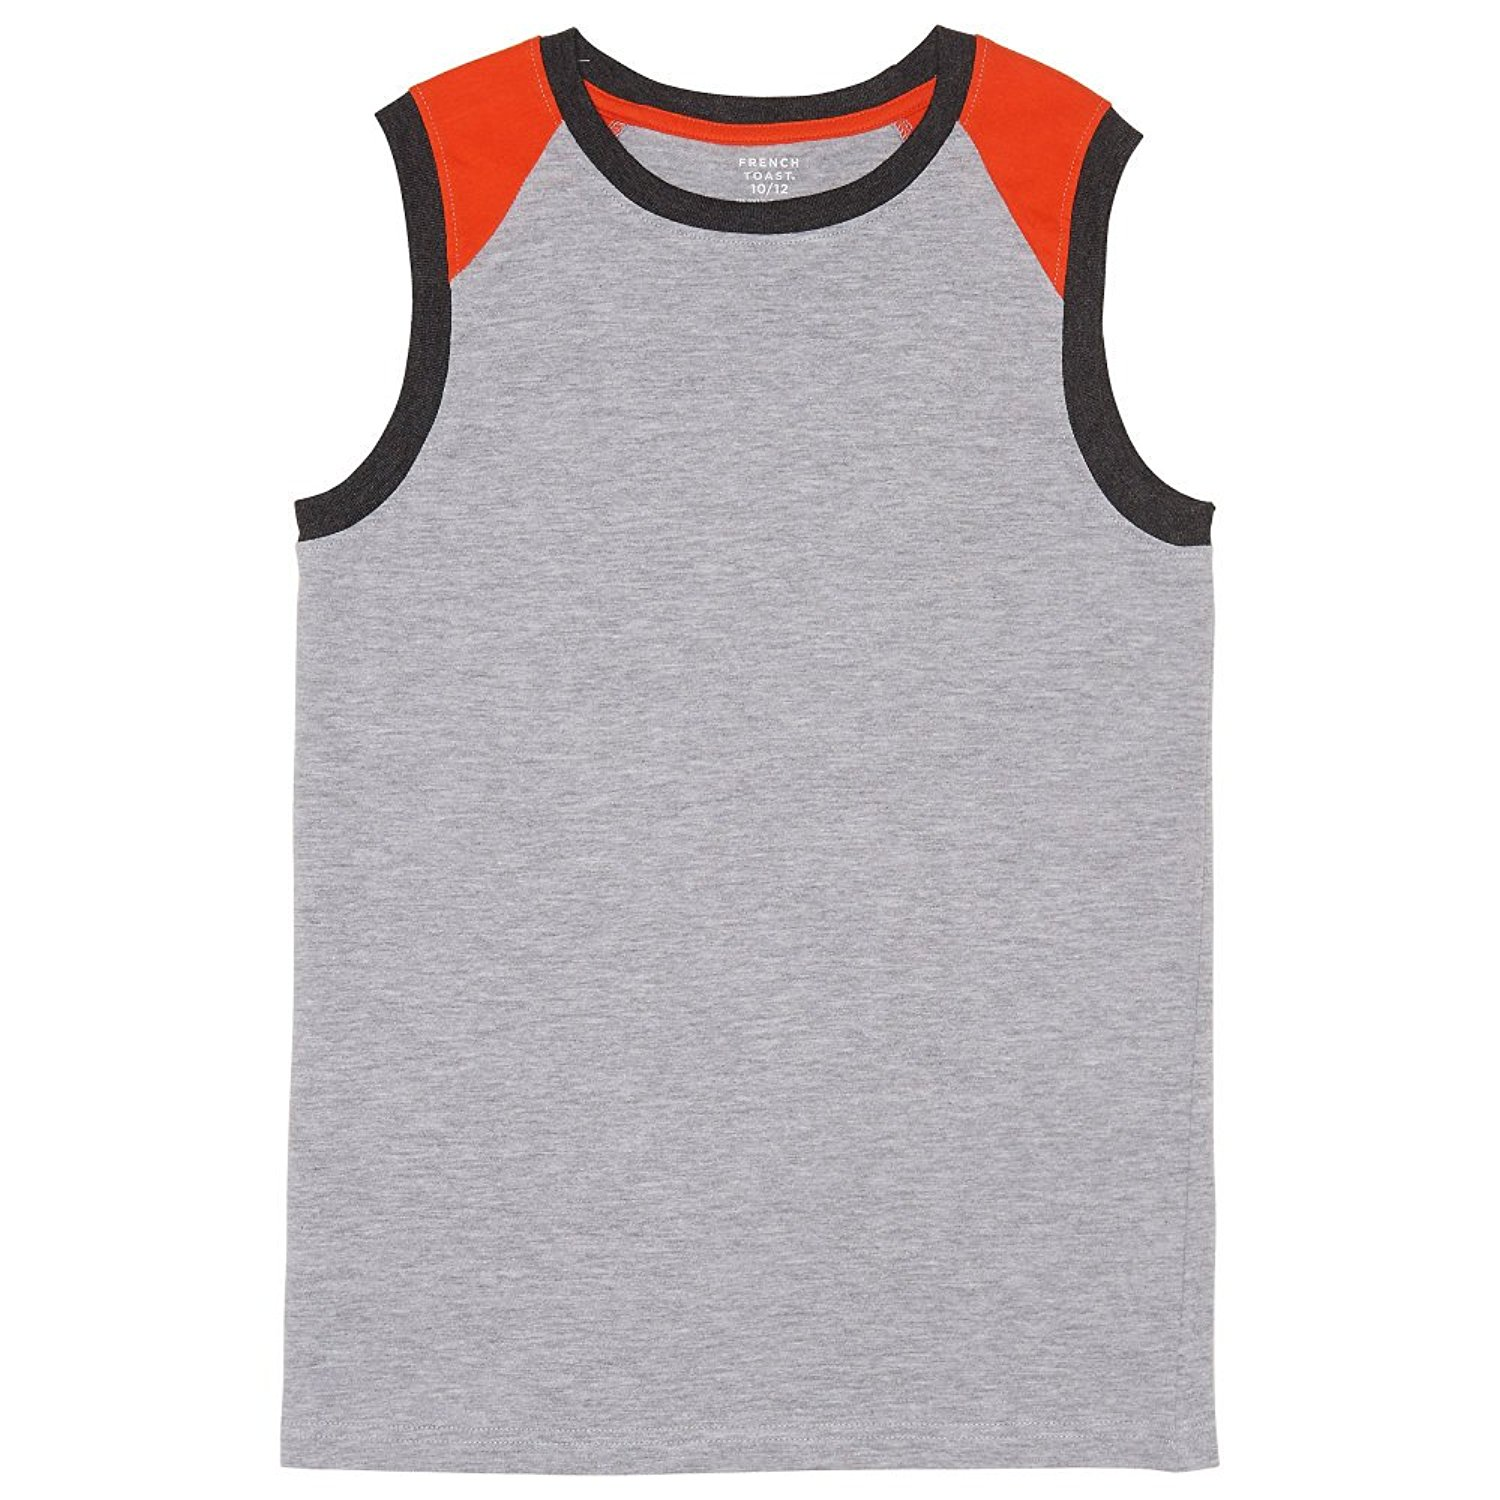 Colorblocked Black French Toast Boys Little Sleeveless Muscle Tee 6